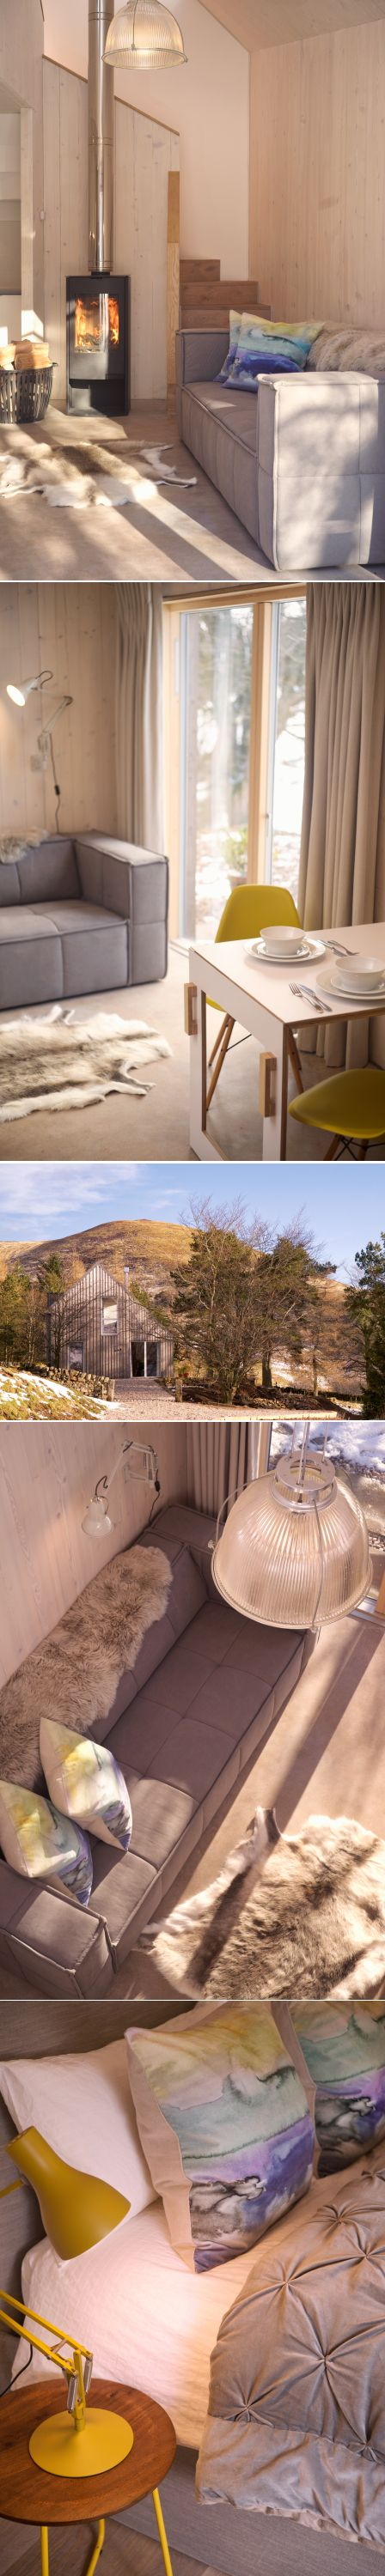 Architect designed holiday house in the Pentland Hills Regional Park near Edinburgh. Westside Woodshed build using CLT timber, with oak & plywood detailing  Architect: Roxburgh McEwan  Modern Architecture Scotland, Nominated for a Saltire Architecture Award  Sofa: Homer Edinburgh/ Cushions: Bluebellgray/ Stove: Aga/ Basket: Cox&Cox/ Paint/ oil: Osmo oil/ Flooring: Russwood/ CLT Timber/ Polished concrete floor/ Folding wall table : Richard Connor West Linton/ Chairs: Vitra Eames DSW Yellow